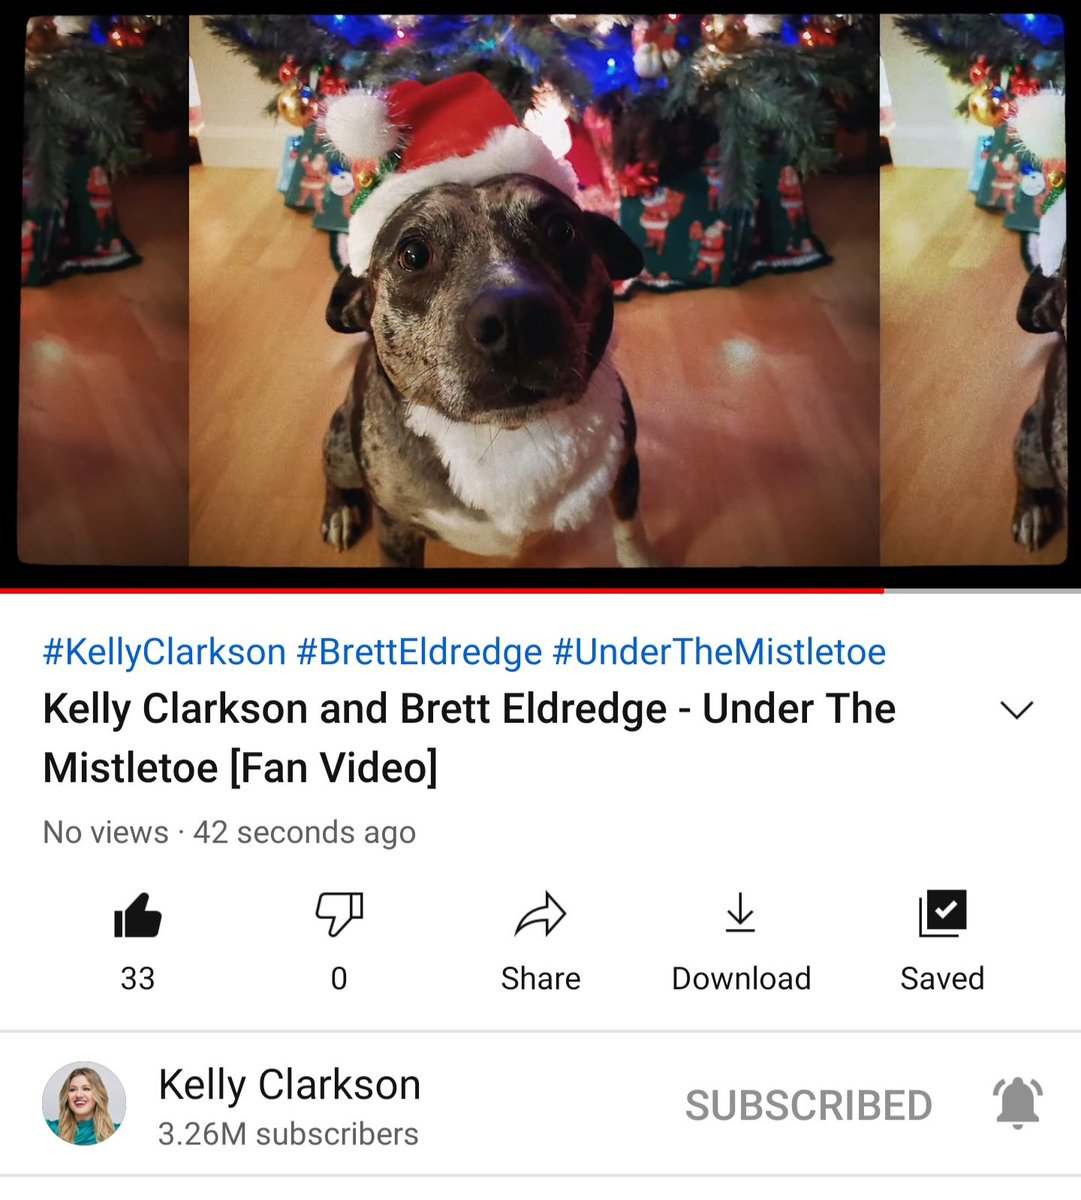 @kellyclarkson @YouTube Thank you so much for including my puppers Blanche!   What a special moment!  Merry Christmas @kellyclarkson !!!!!! 🎄🎅🤶☃️🎄